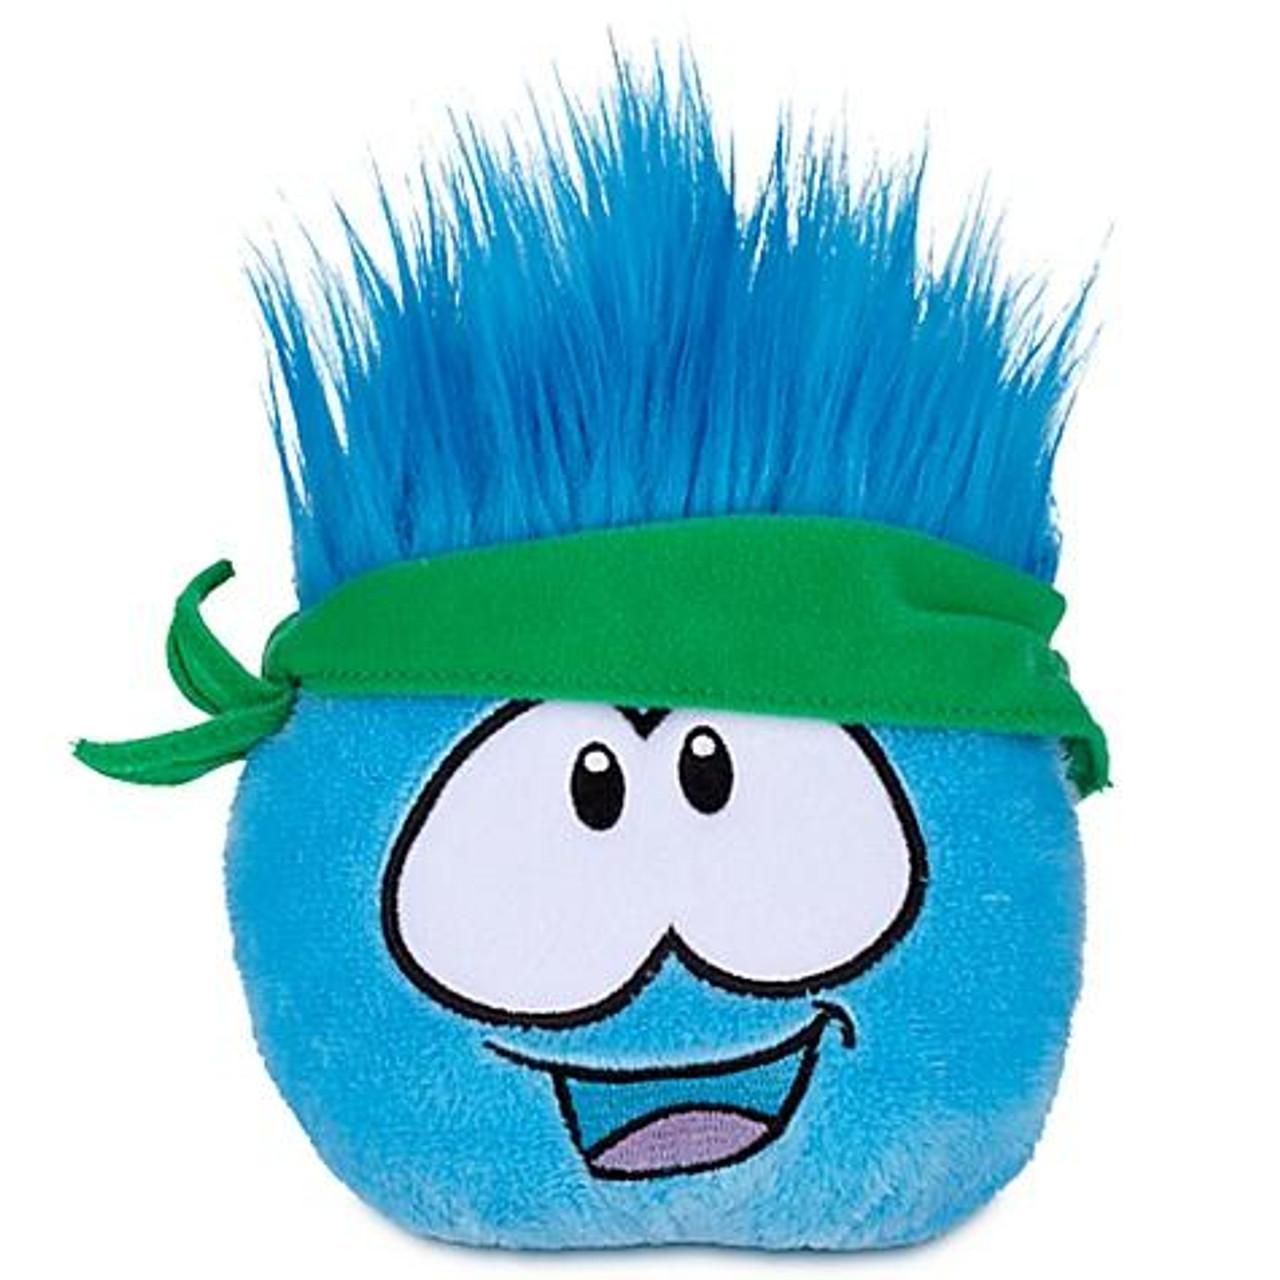 Club Penguin Series 12 Blue Puffle 4-Inch Plush [Bandana]